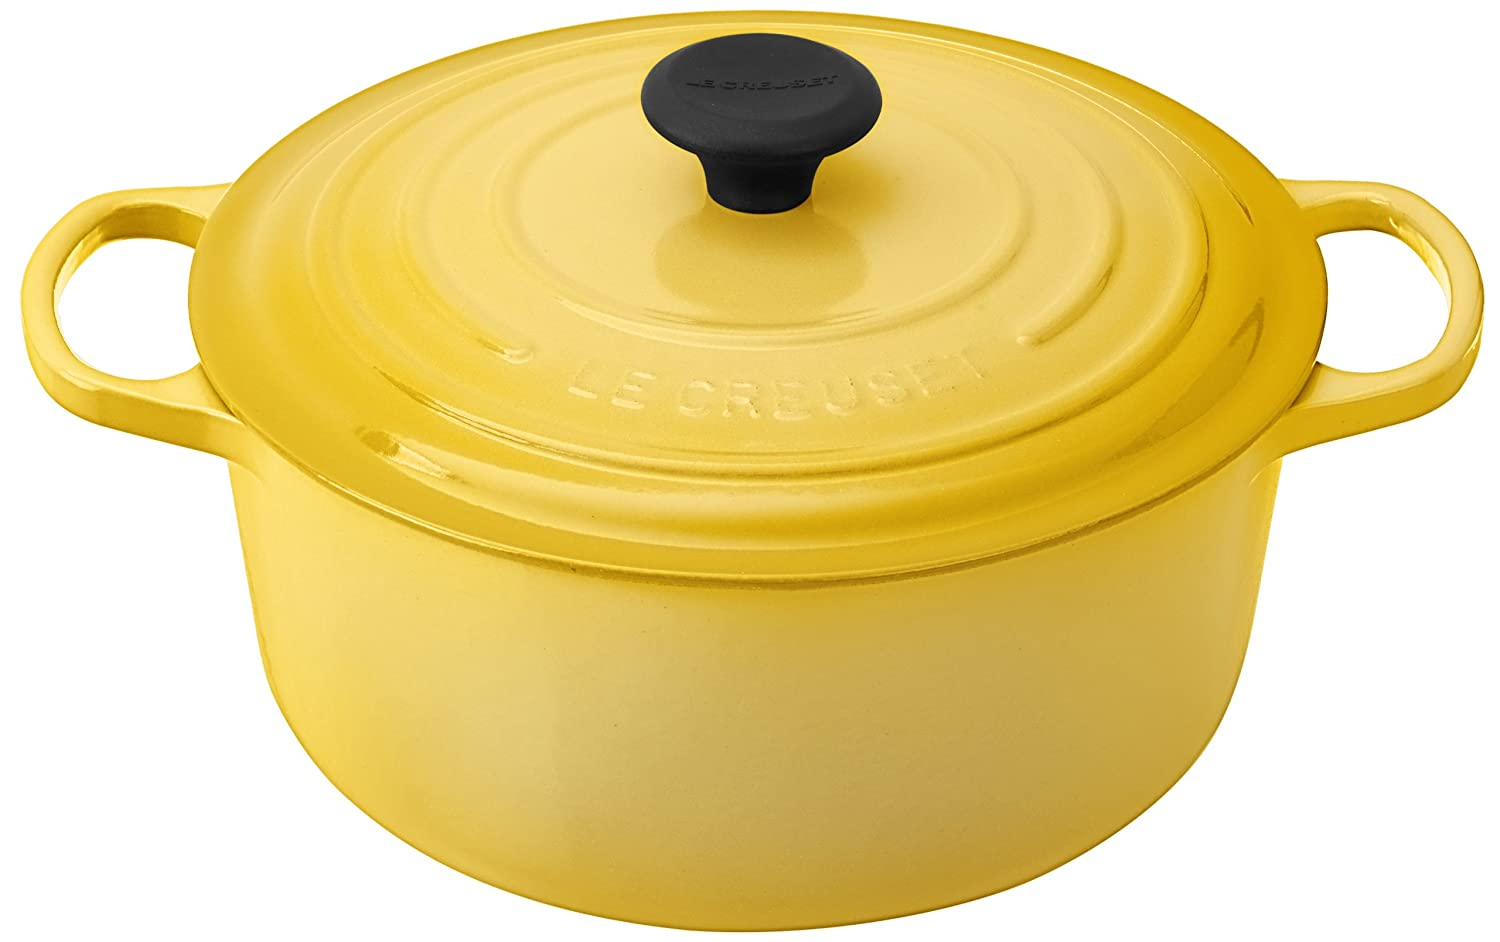 Le Creuset Signature Enameled Cast-Iron 5-1/2-Quart Round French (Dutch) Oven, Soleil